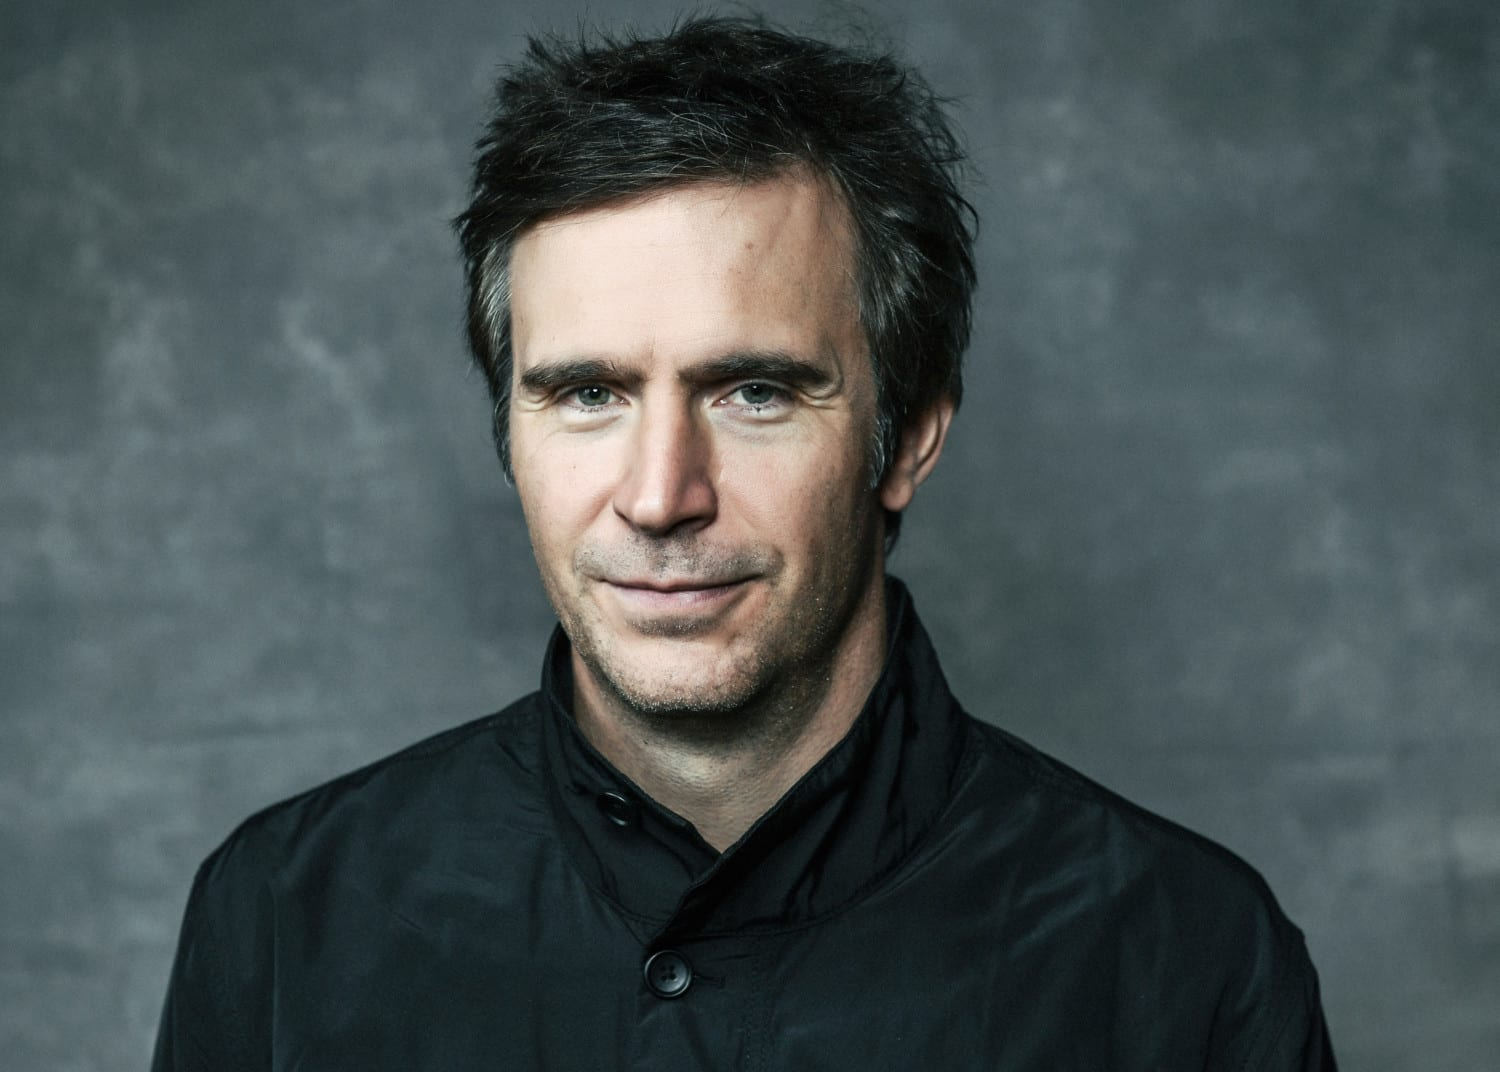 Jack Davenport photo